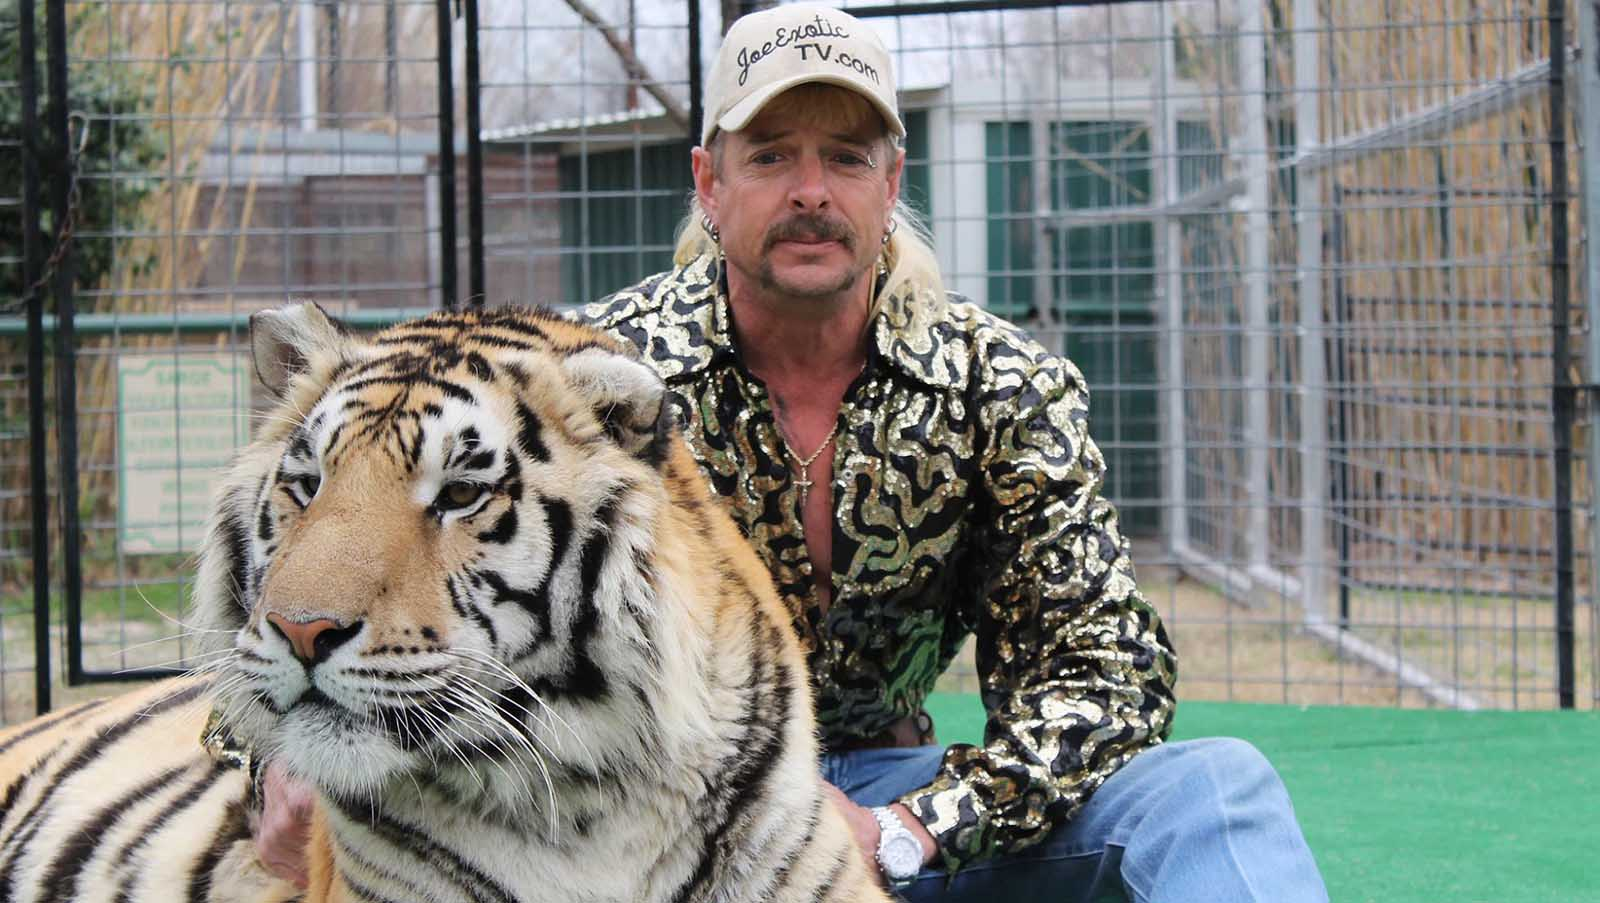 Joe Exotic was the true star of 'Tiger King' but will the convicted felon make an appearance in season 2 of the hit Netflix show?